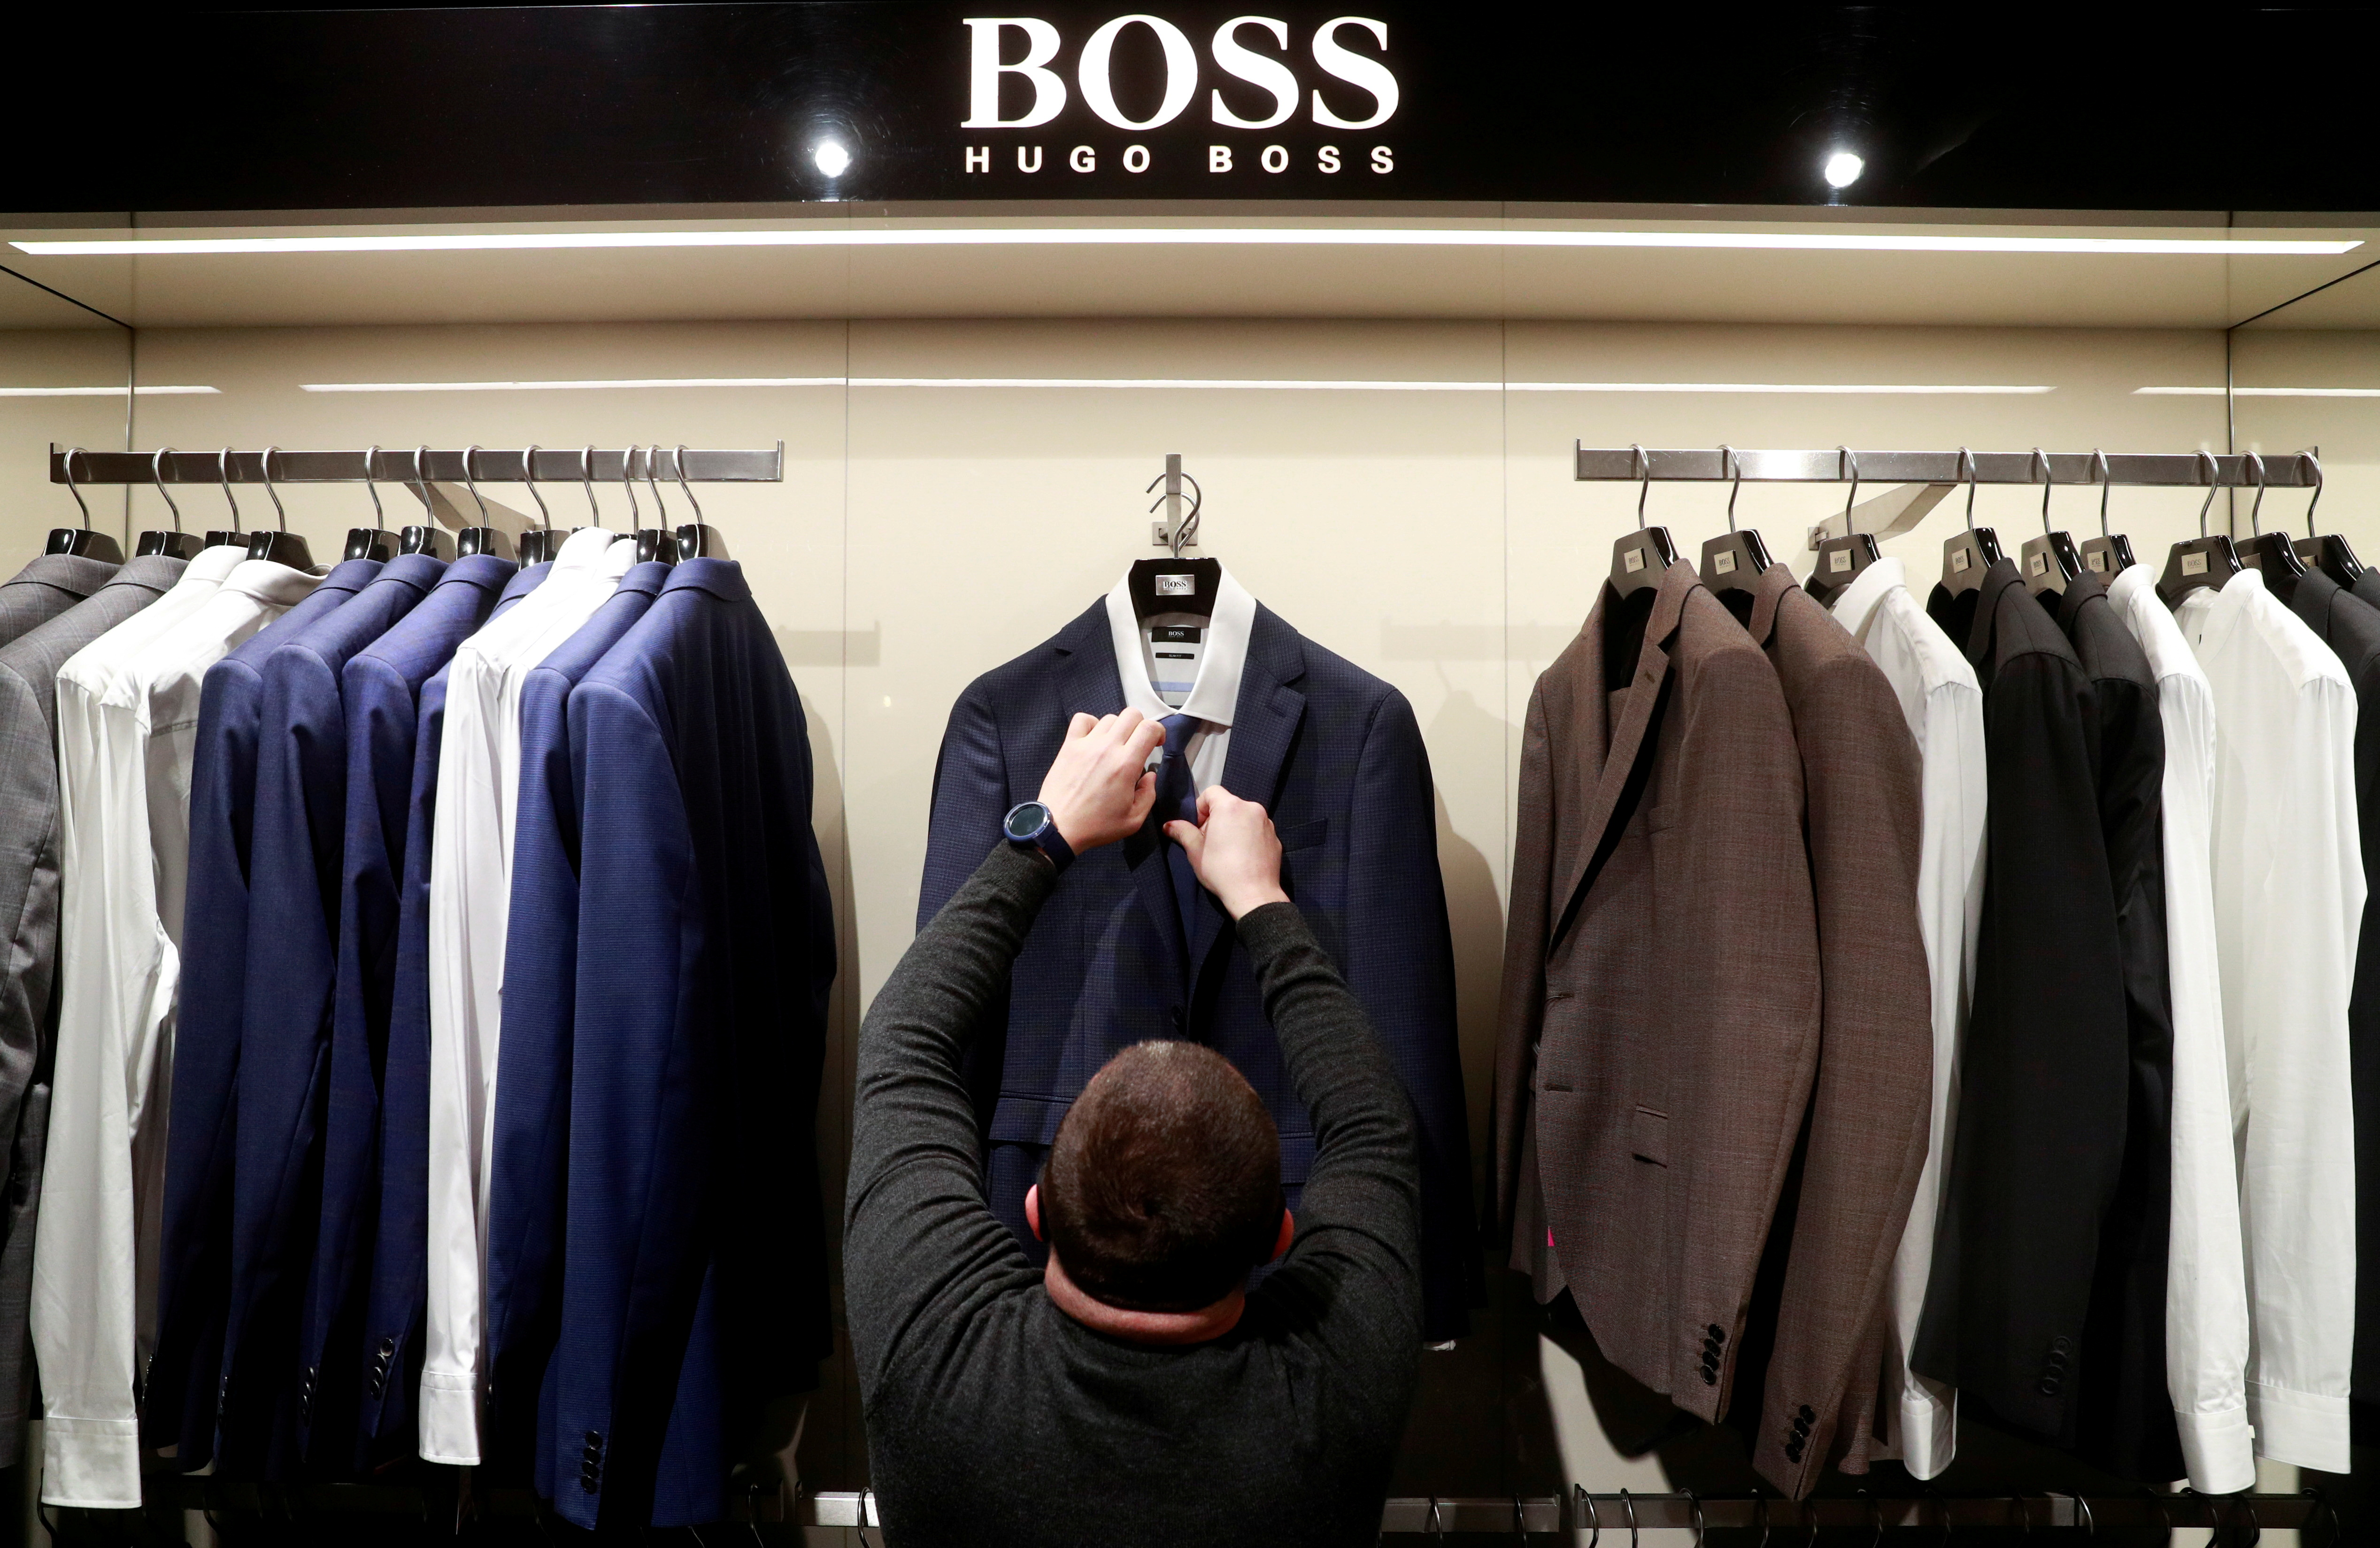 An employee displays suits at the Hugo Boss section of the Central Universal Department Store (TsUM), on the first day after ending a coronavirus lockdown, in Kyiv, Ukraine January 25, 2021. REUTERS/Valentyn Ogirenko/File Photo